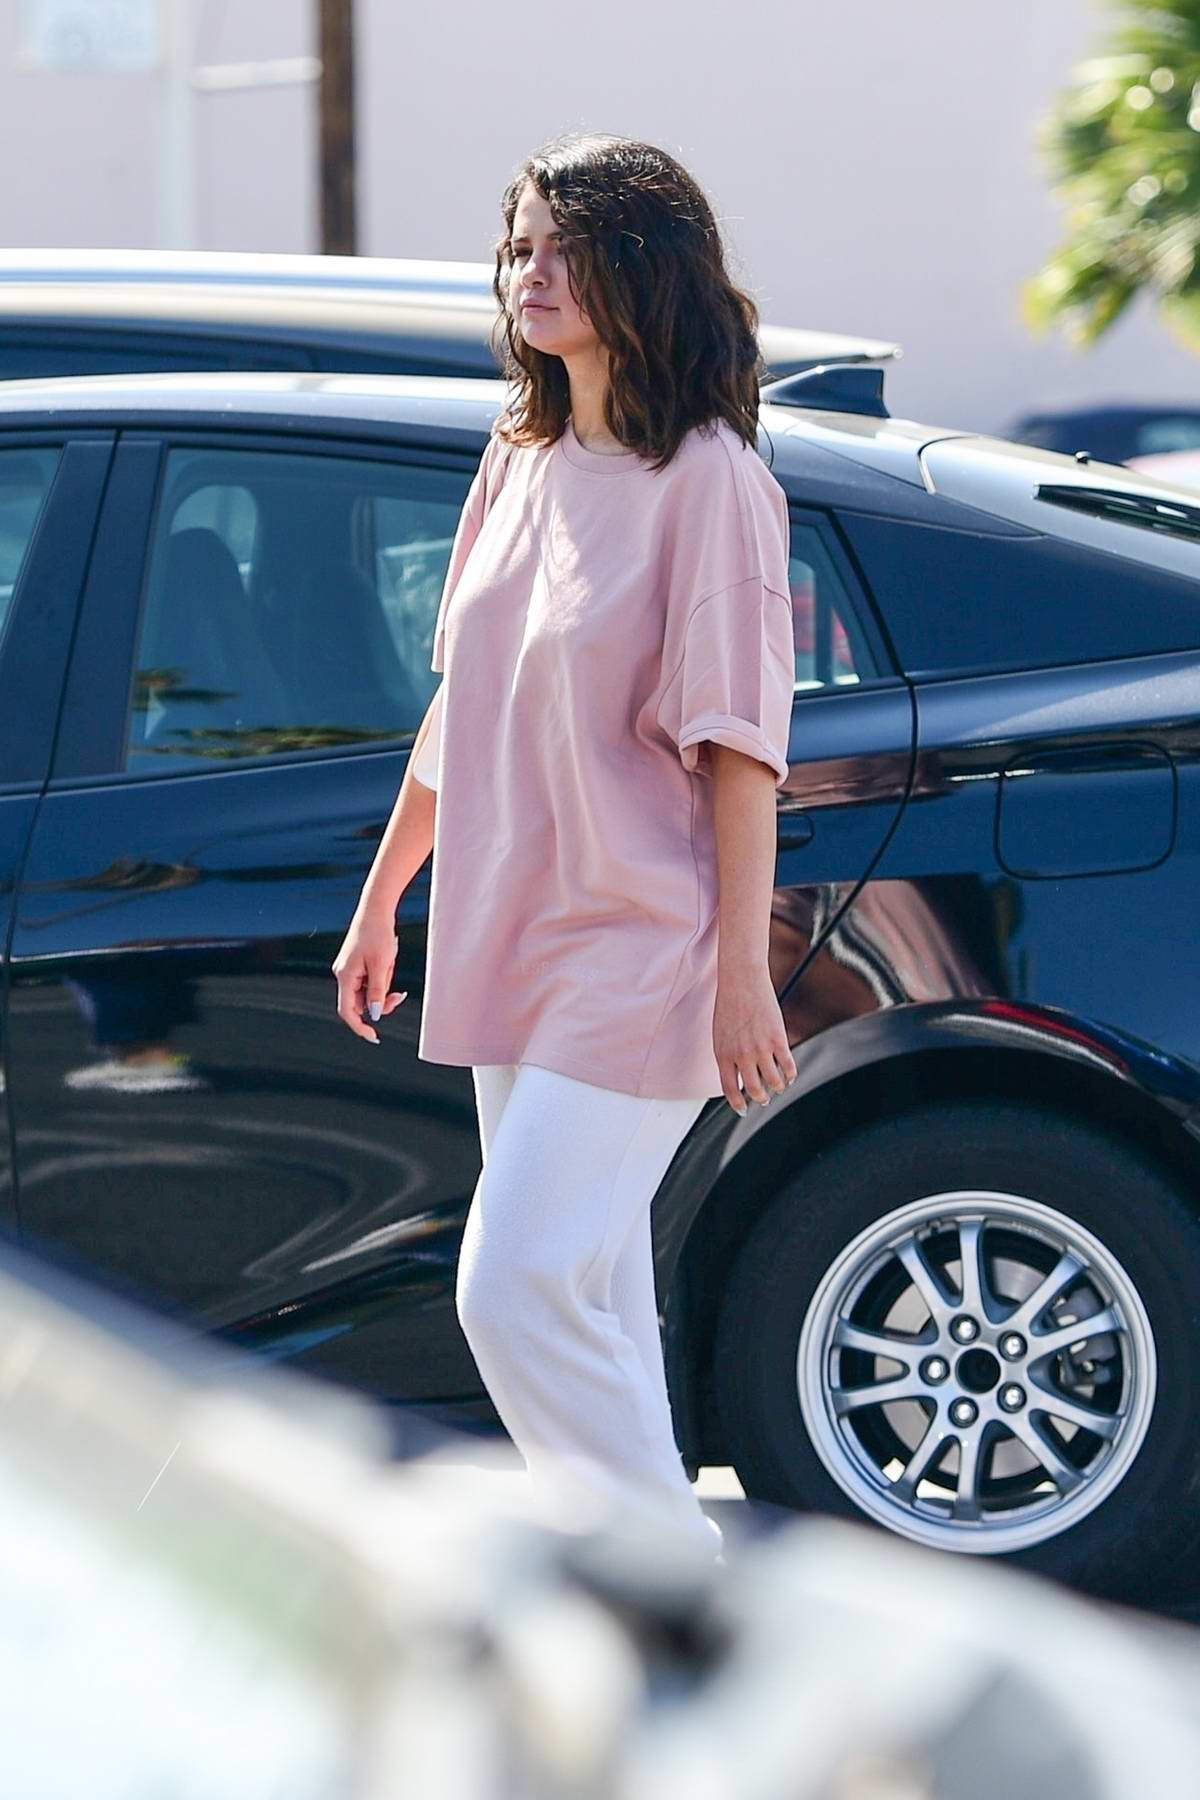 Selena Gomez wears an oversized pink t-shirt and white sweatpants during a shopping trip with friends in Los Angeles